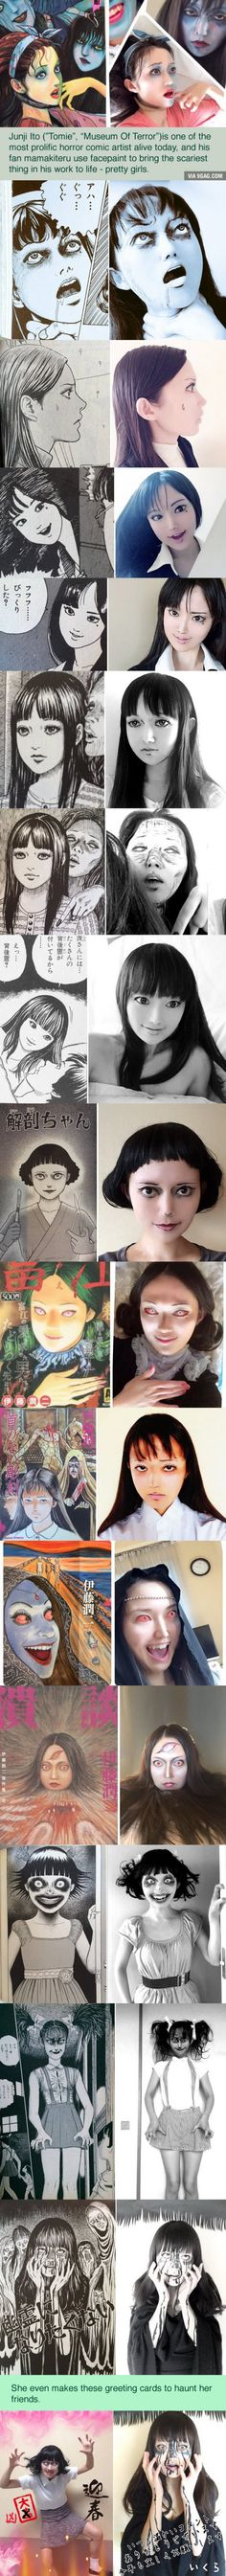 Talented girl's Junji Ito cosplay will haunt your dreams (By Mamakiteru)